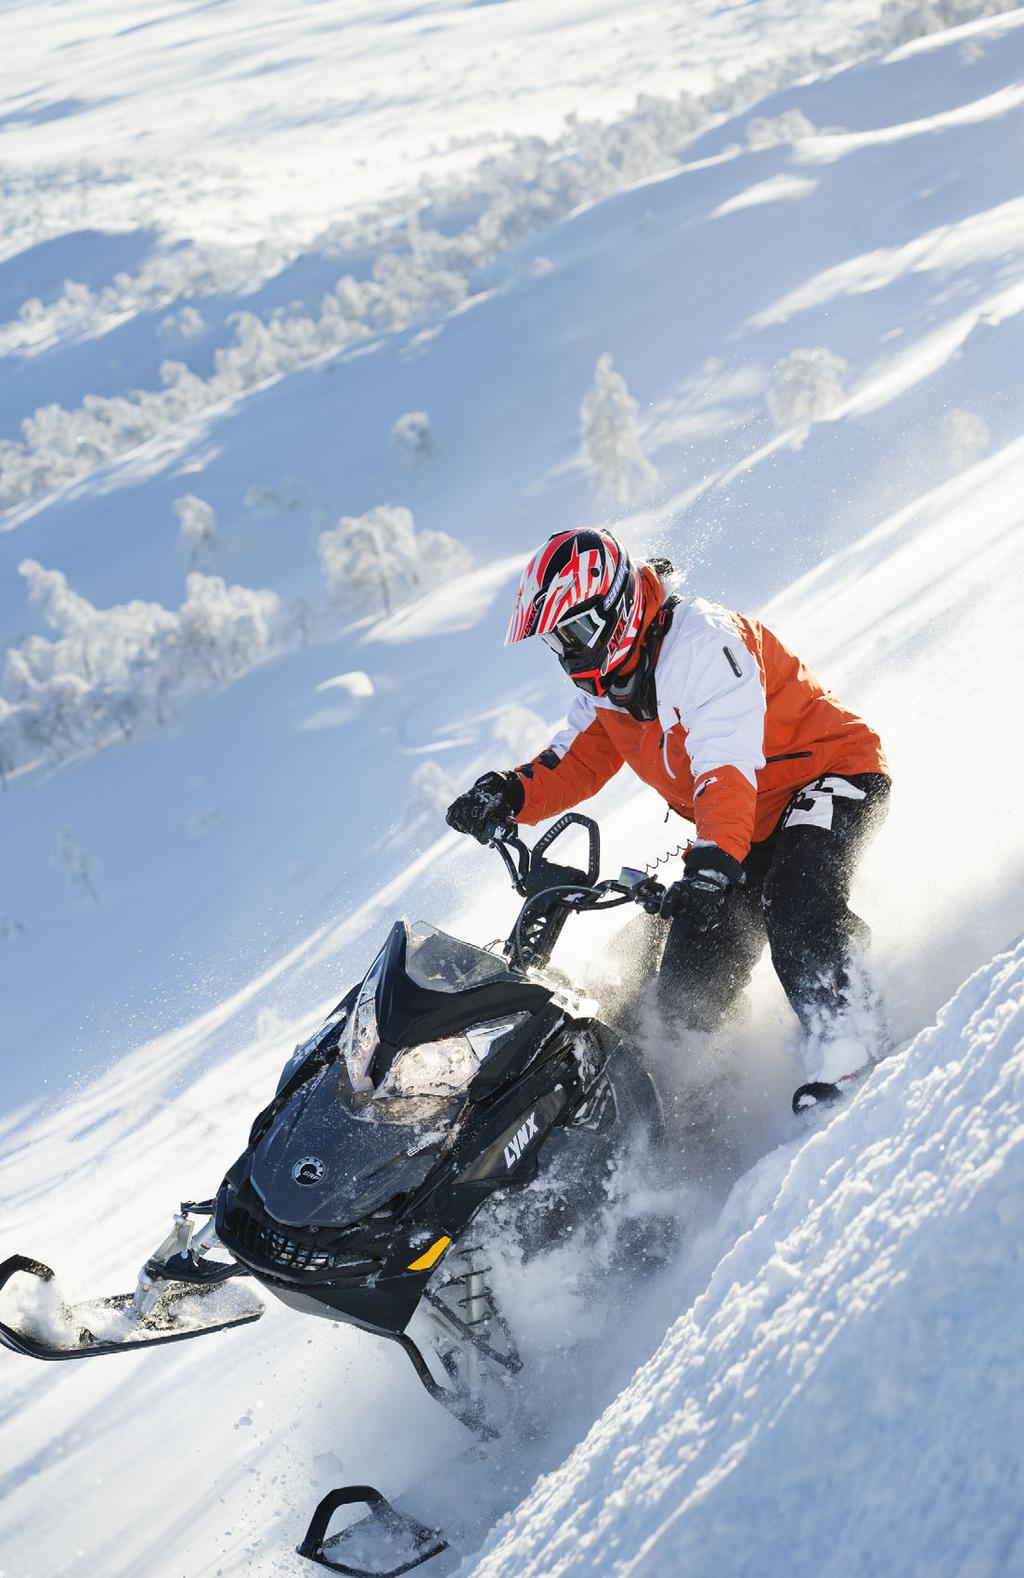 LIVE TO RIDE BEAT EXTREME CONDITIONS GRAFIKKSETT SIKKERHET I